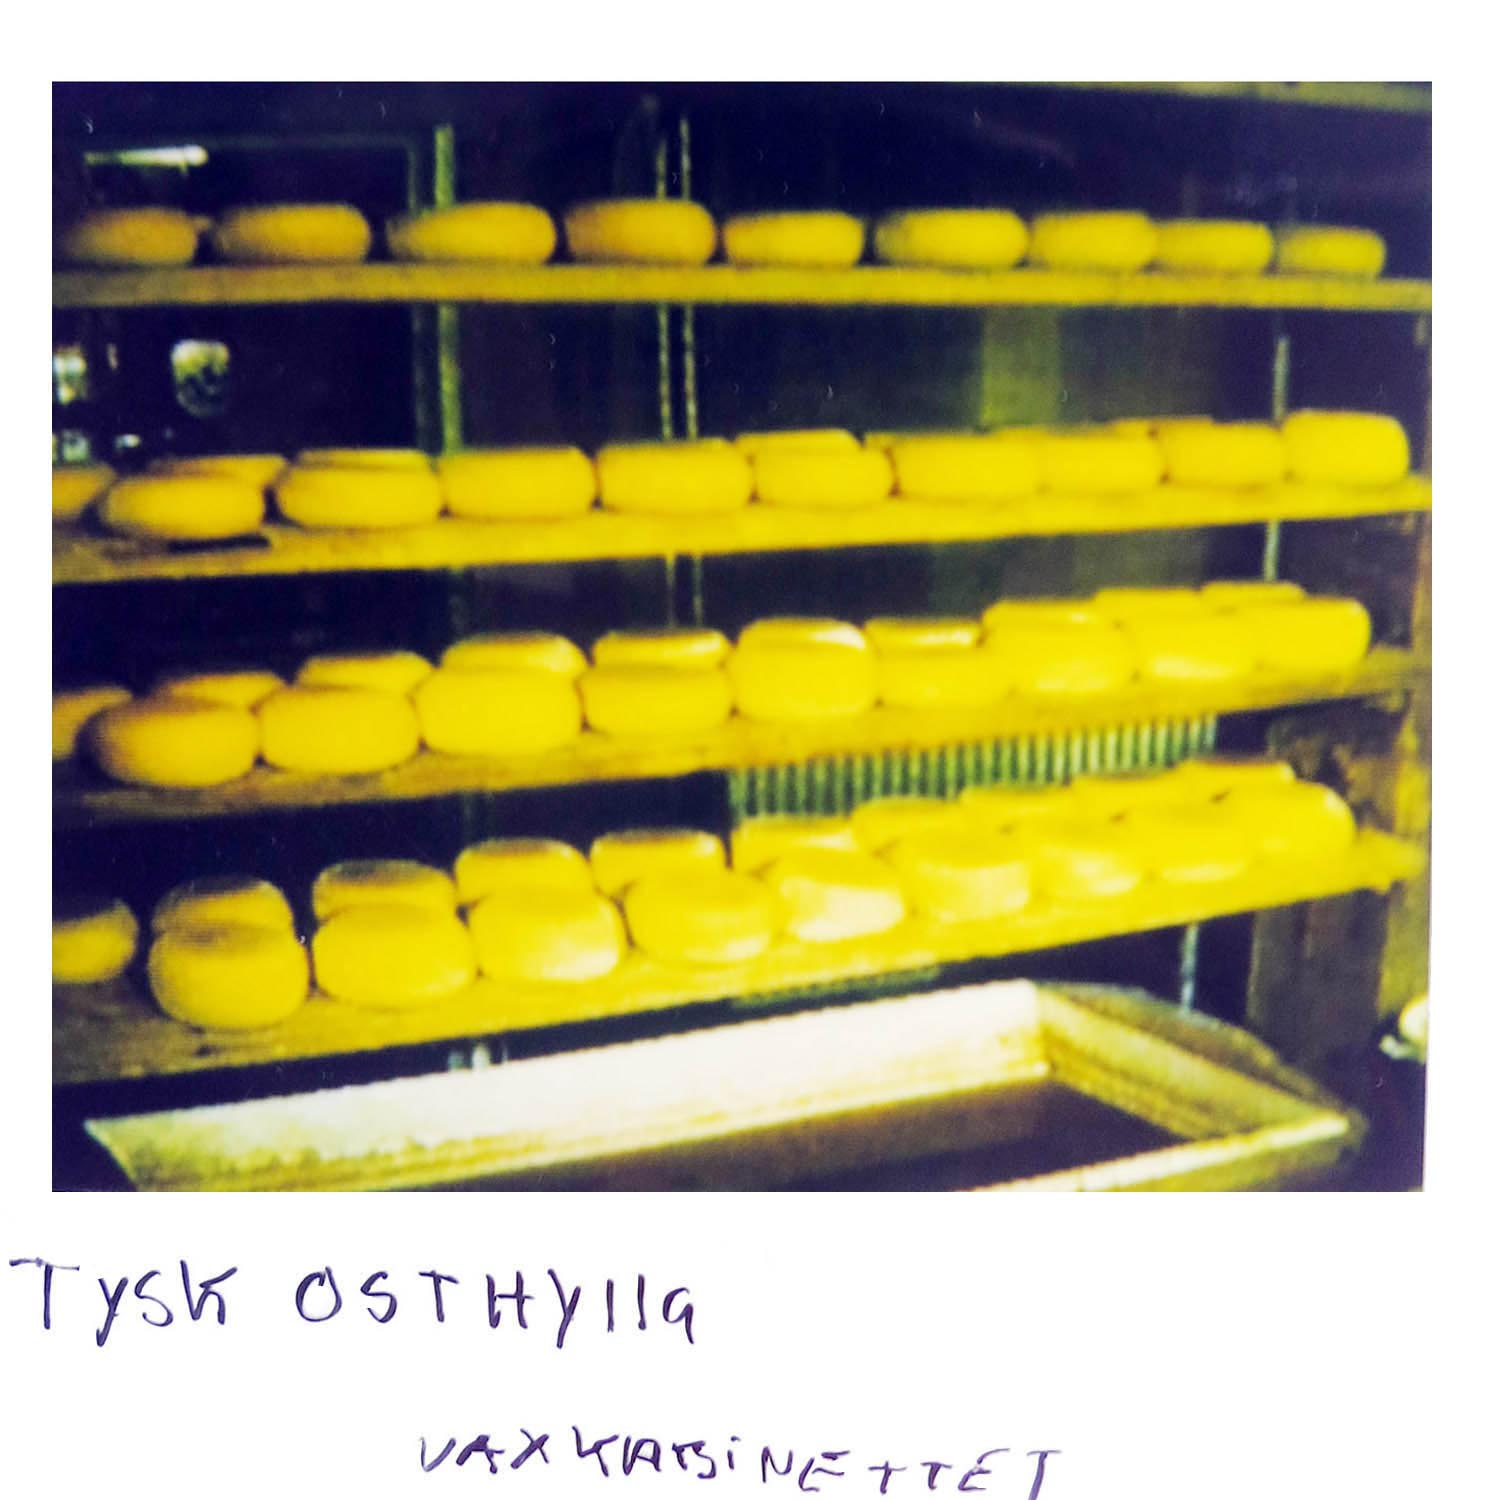 A German cheese shelf  at the waxworks museum in Germany